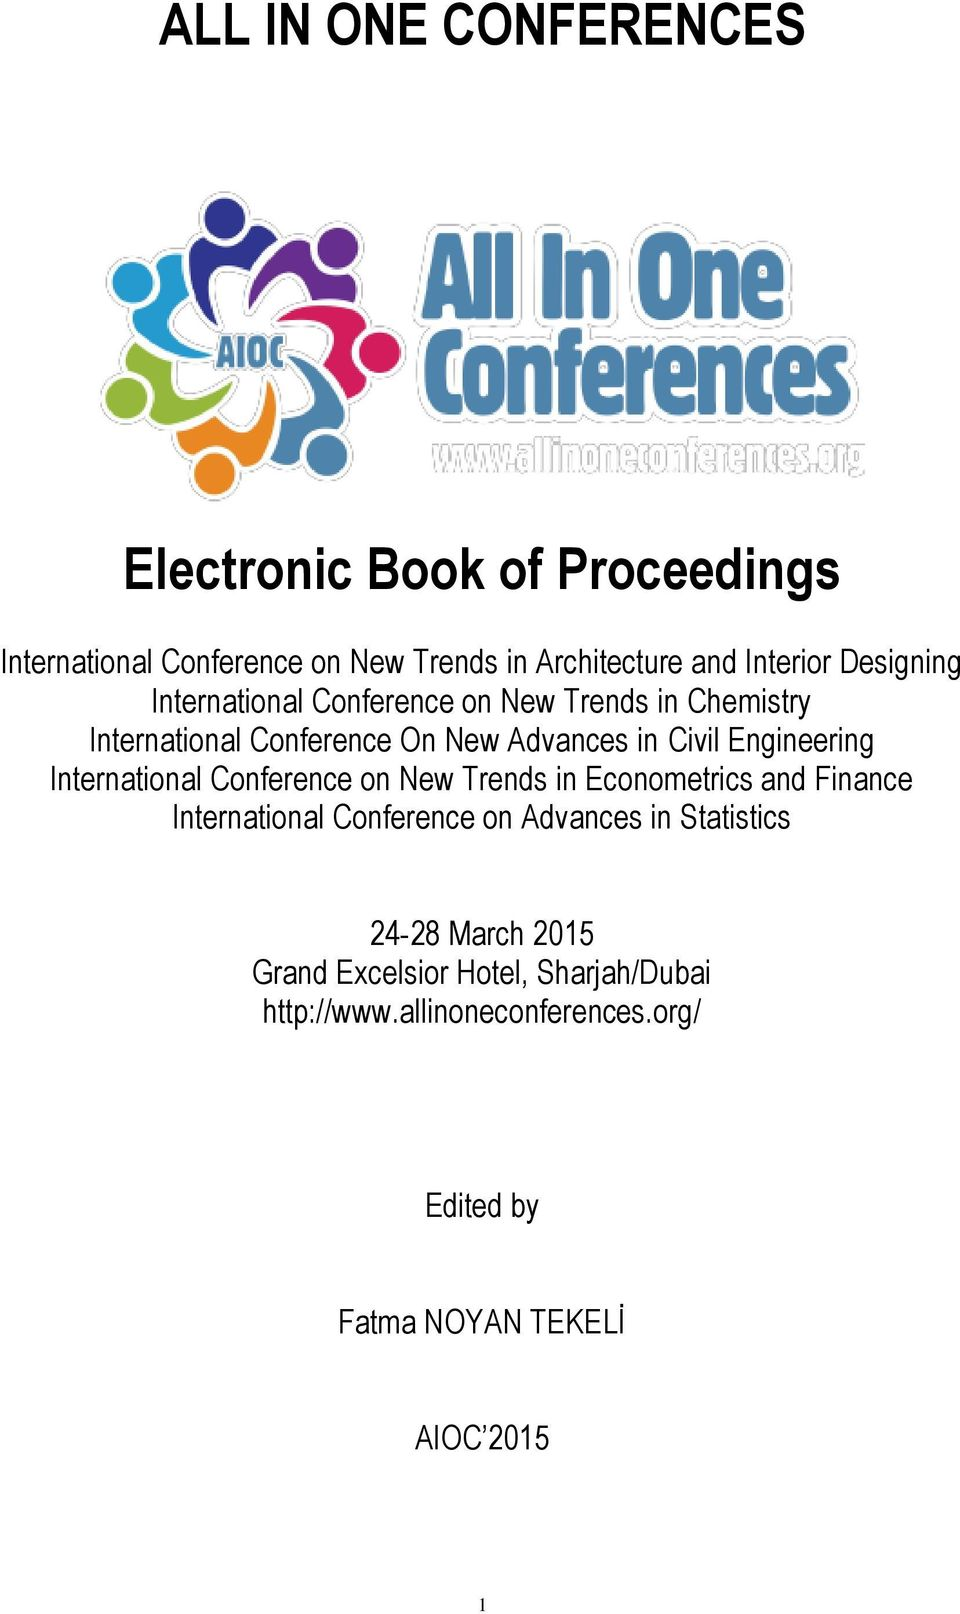 International Conference on New Trends in Econometrics and Finance International Conference on Advances in Statistics 24-28